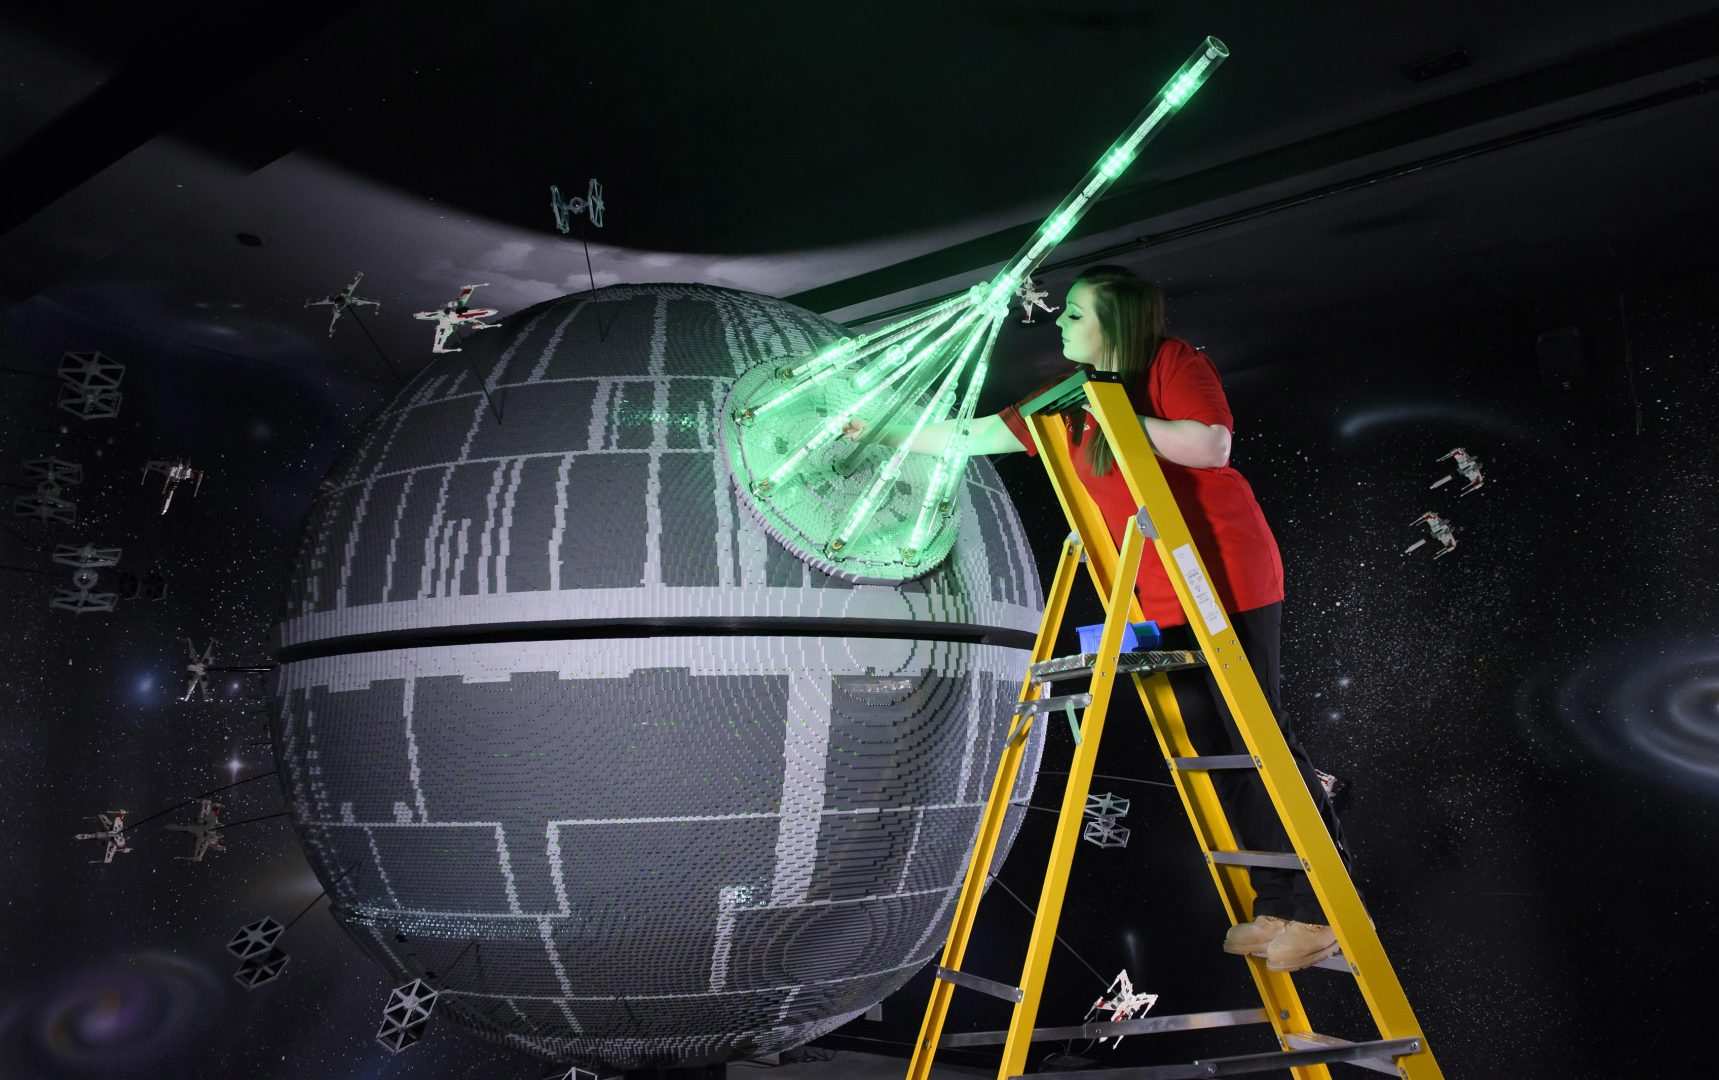 ONE OF THE WORLD'S BIGGEST EVER LEGO® STAR WARS™ MODELS INSTALLED AT THE LEGOLAND® WINDSOR RESORT. LAST PIECES PUT IN PLACE ON 500,000 LEGO® BRICK DEATH STAR. LEGOLAND® Model Maker, Phoebe Rumbol, puts the finishing touches to one of the most impressive and biggest LEGO® Star Wars™ models ever created as a 500,000 brick LEGO® Star Wars™ recreation of The Death Star is installed in a new finale to the Resort's LEGO® Star Wars™ Miniland Model Display. The operation took three days as the massive new 2.4 metre wide, 3 metre high creation was carefully hoisted into position and the final bricks  were put in place. The hefty 860kg perfectly spherical model took 15 Model Makers three months to build and  guests can trigger special effects and bring the scene to life when it opens at the Resort on 11 March.  TM & © Lucasfilm Ltd. All rights reserved